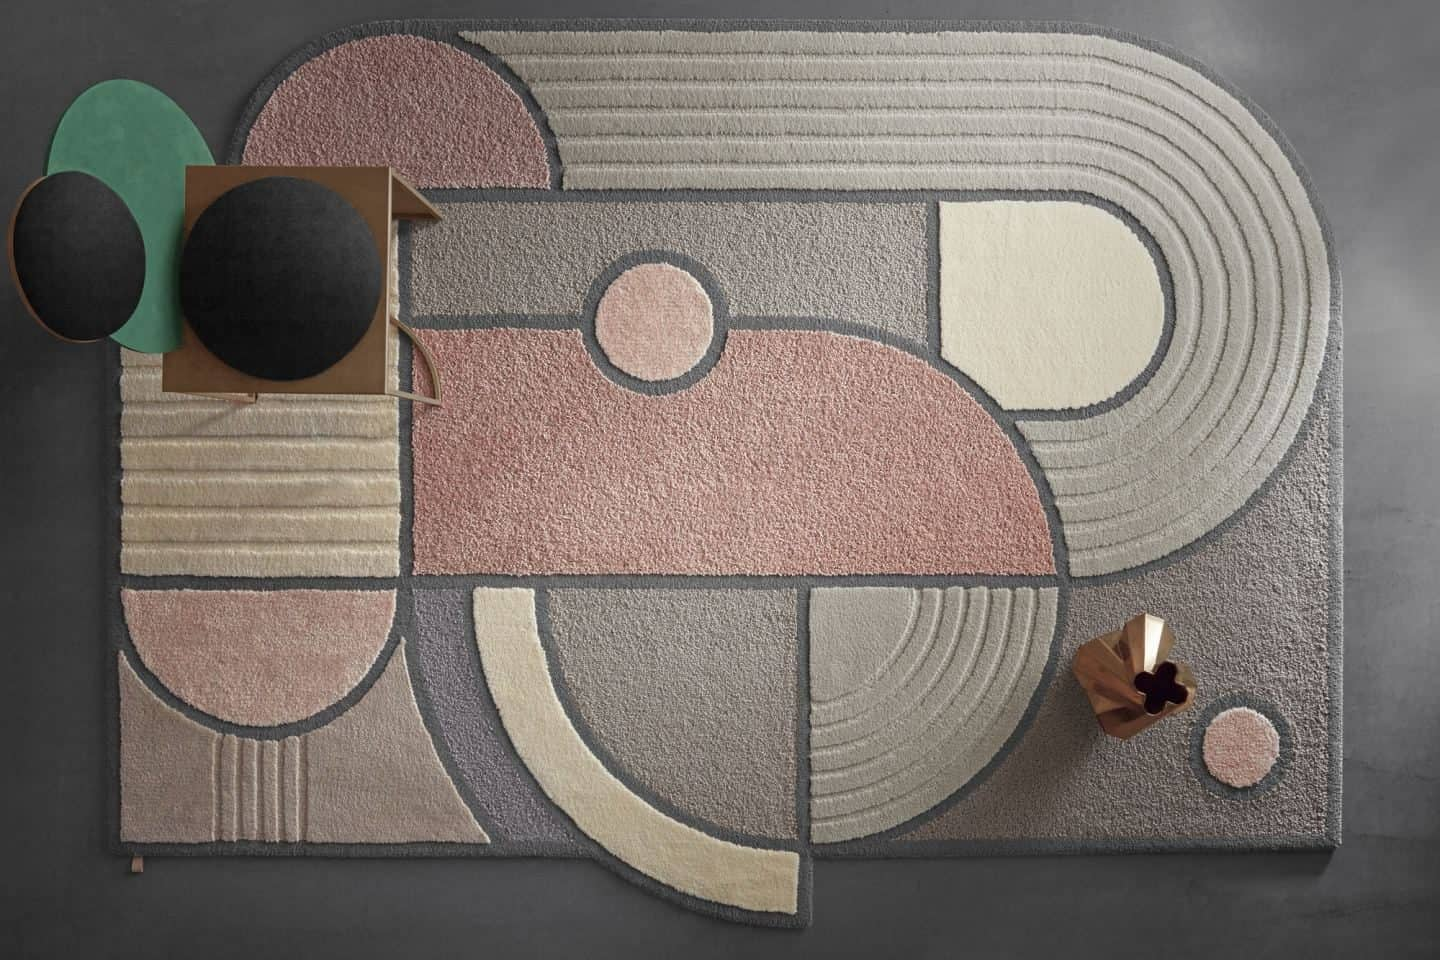 Kasthall West of the Sun rug by Lara Bohinc - unusual shaped rugs